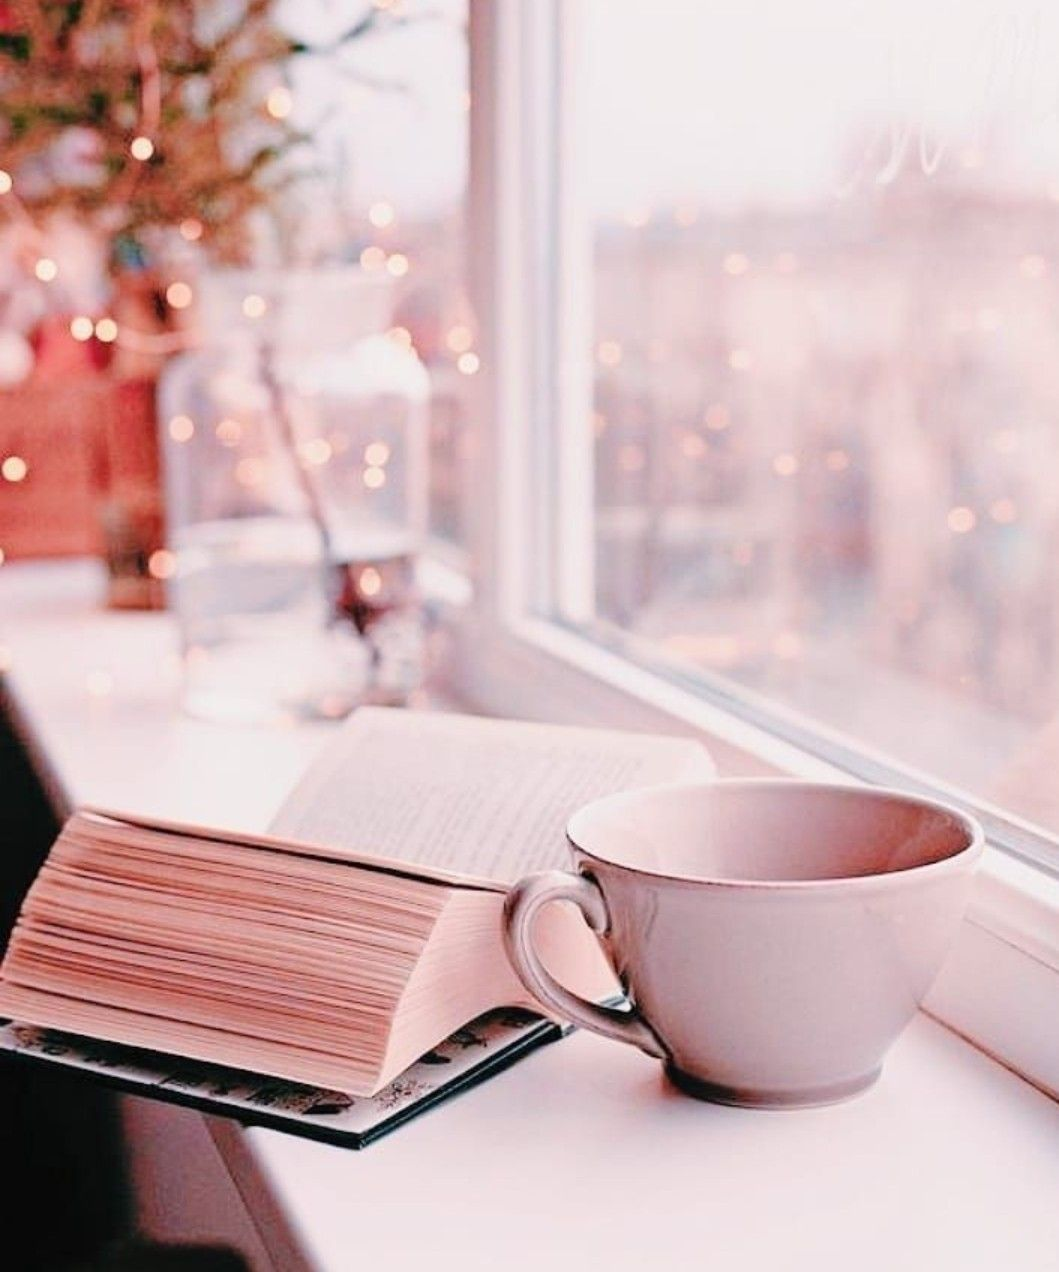 Image About Winter In Book By Naz On We Heart It In 2020 Coffee And Books Book Photography Cool Pictures For Wallpaper